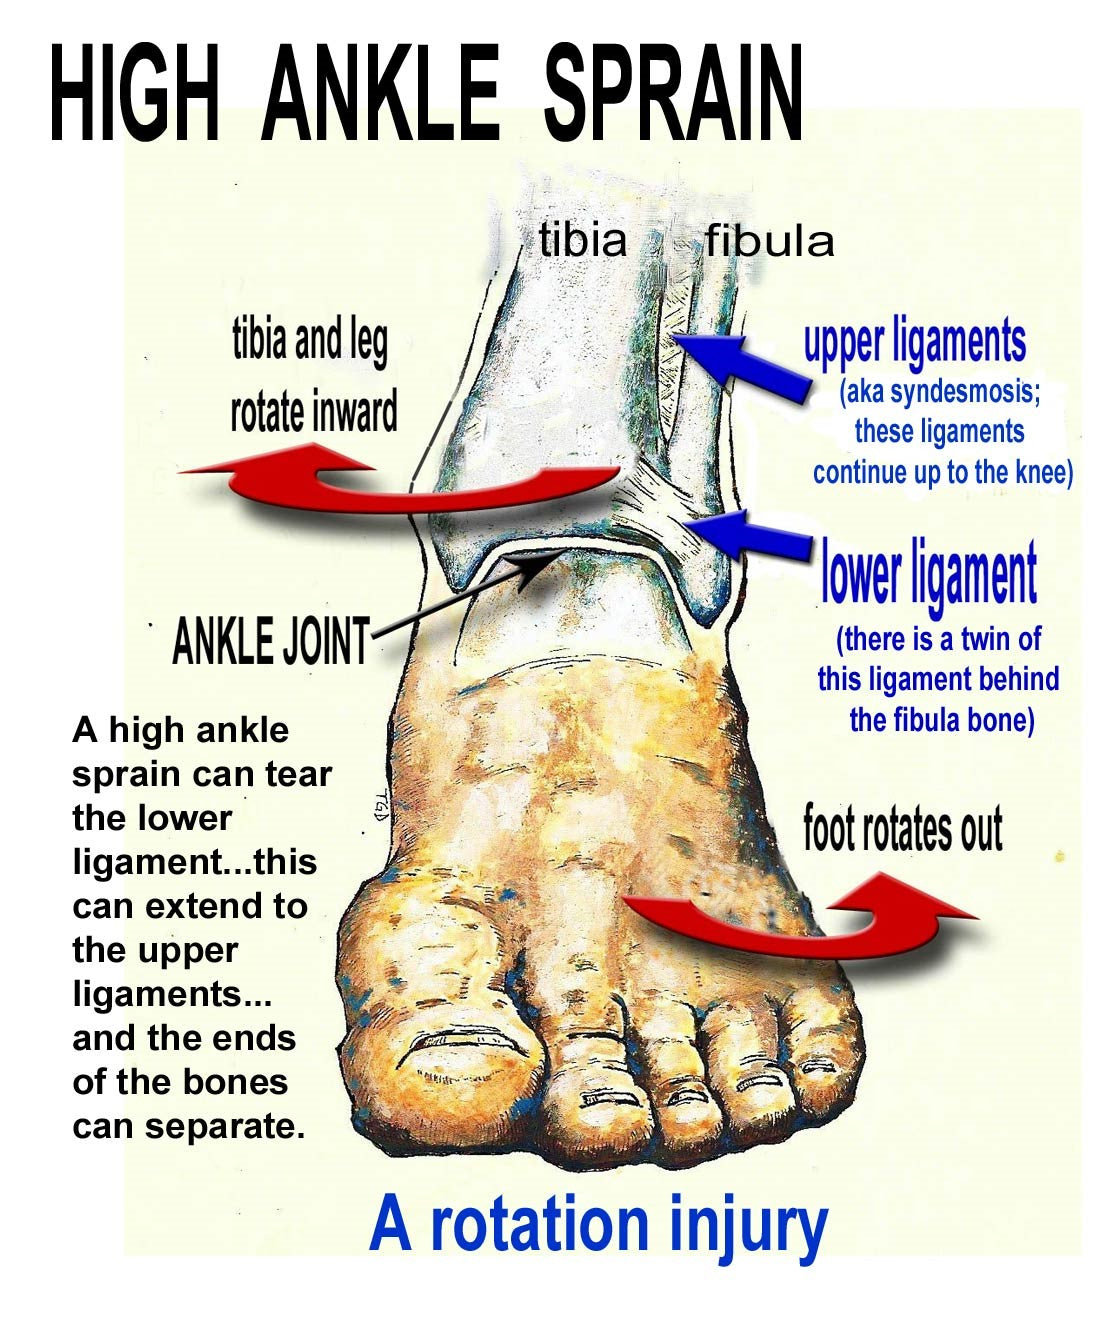 high ankle sprain picture